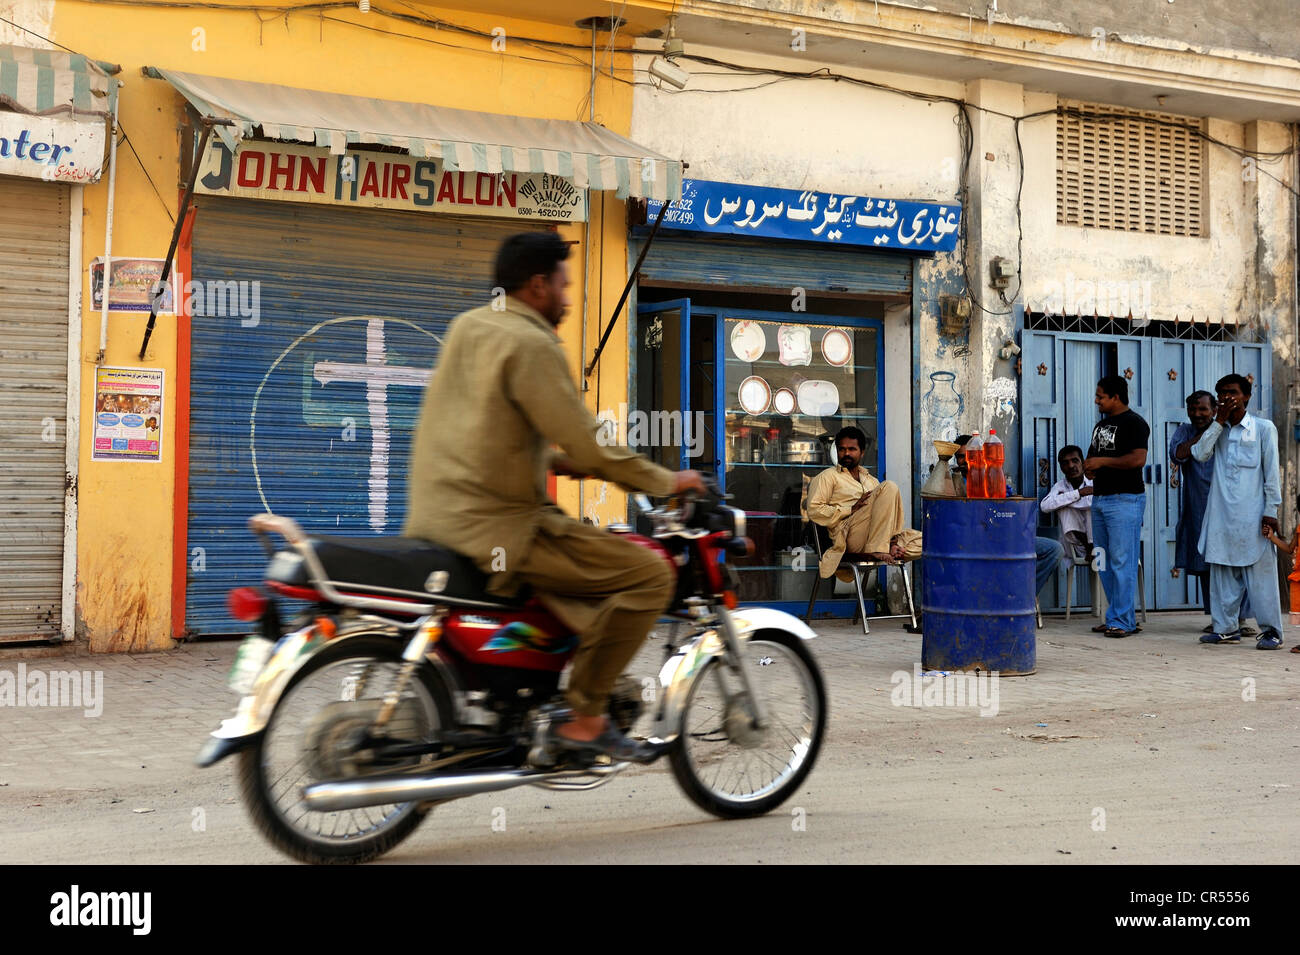 Street scene in the Christian quarter of Youhanabad, Lahore, Punjab, Pakistan, Asia - Stock Image